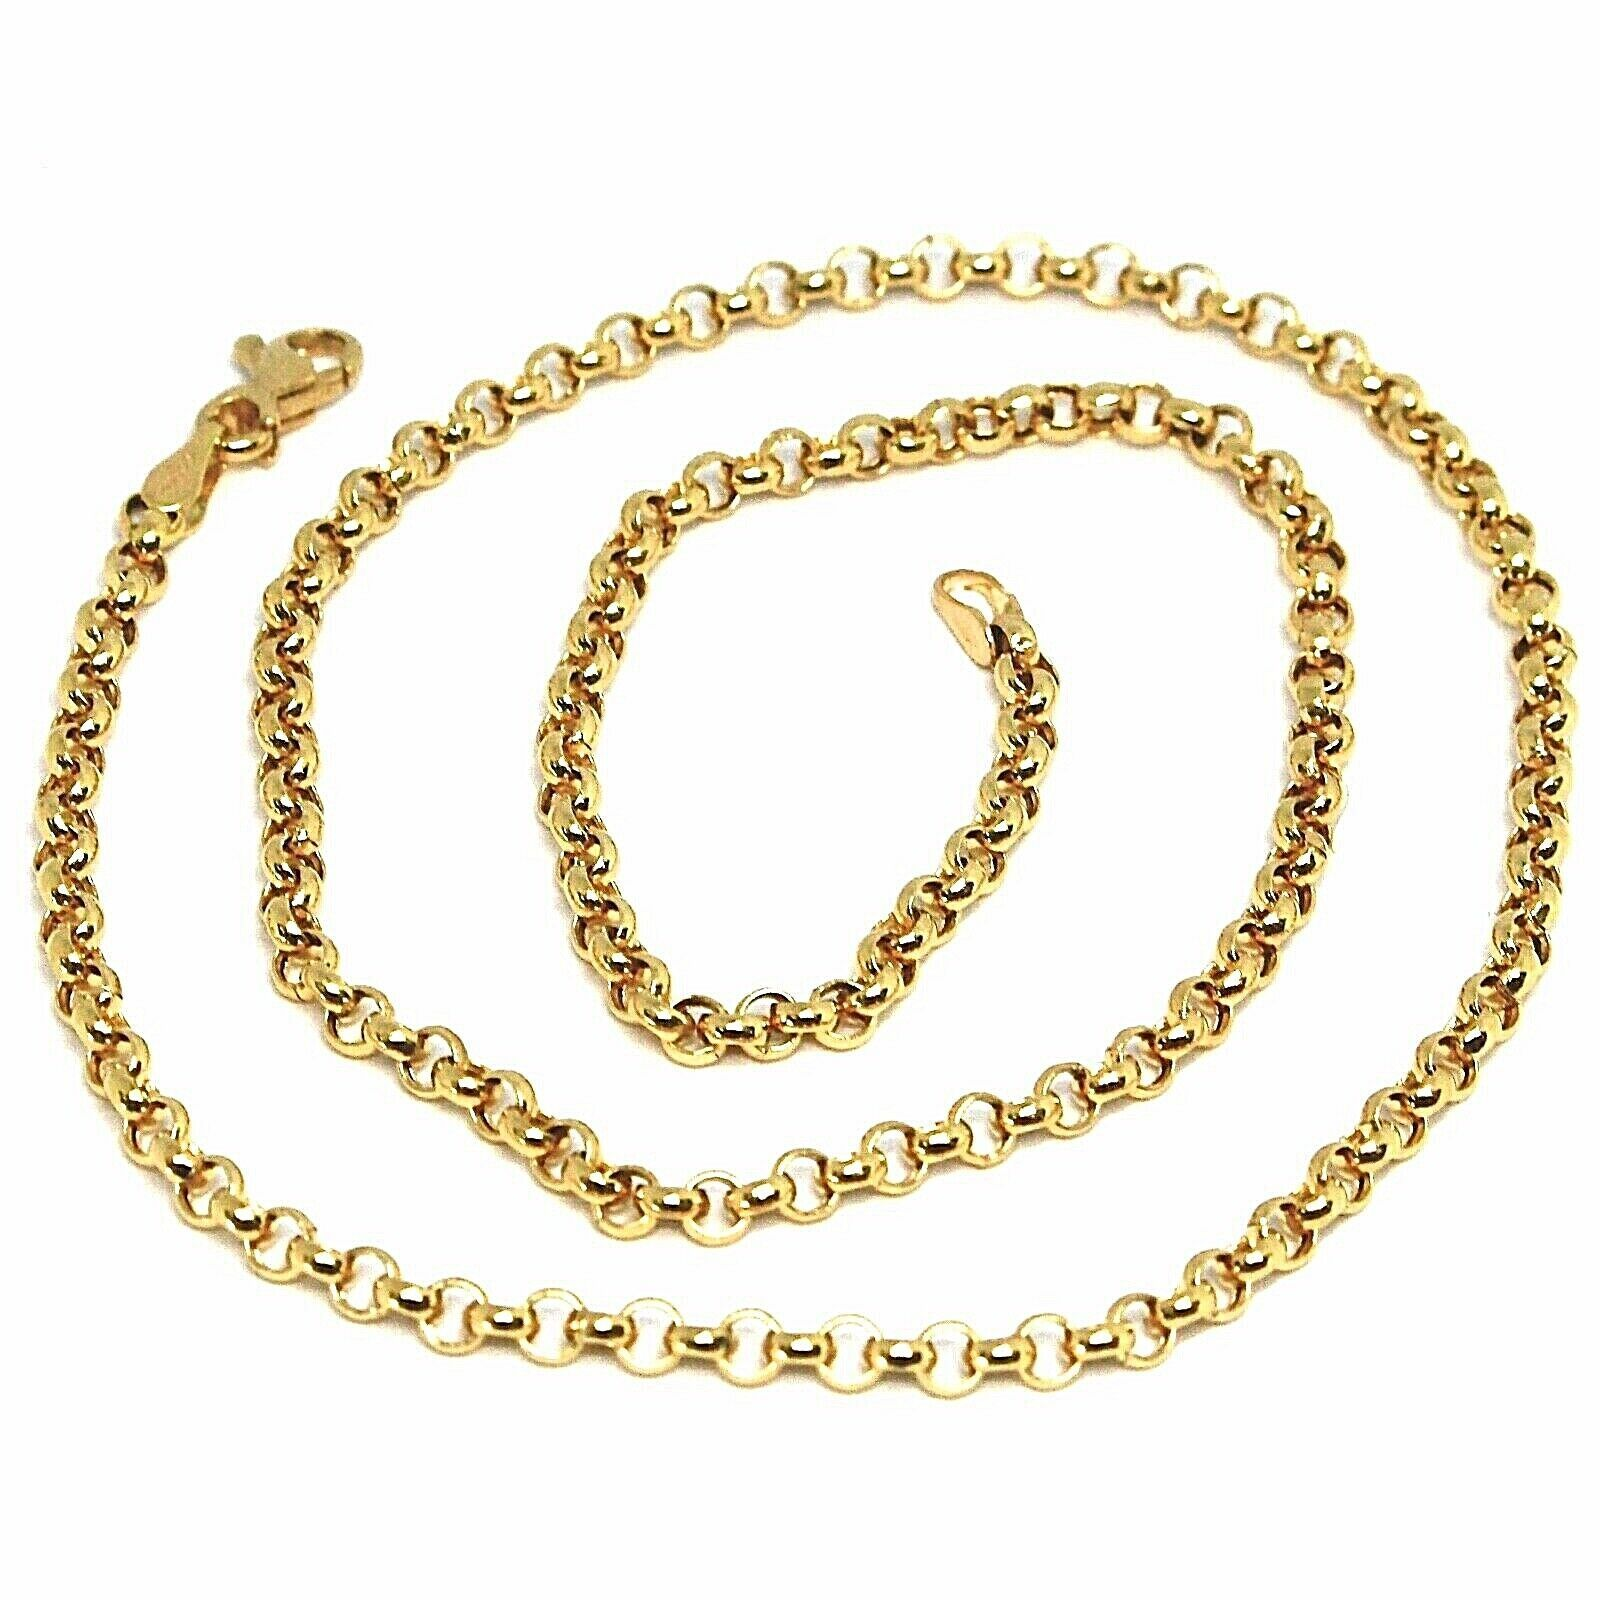 "18K YELLOW GOLD CHAIN 19.70"", DOME ROUND CIRCLE ROLO LINK 3 MM MADE IN ITALY"